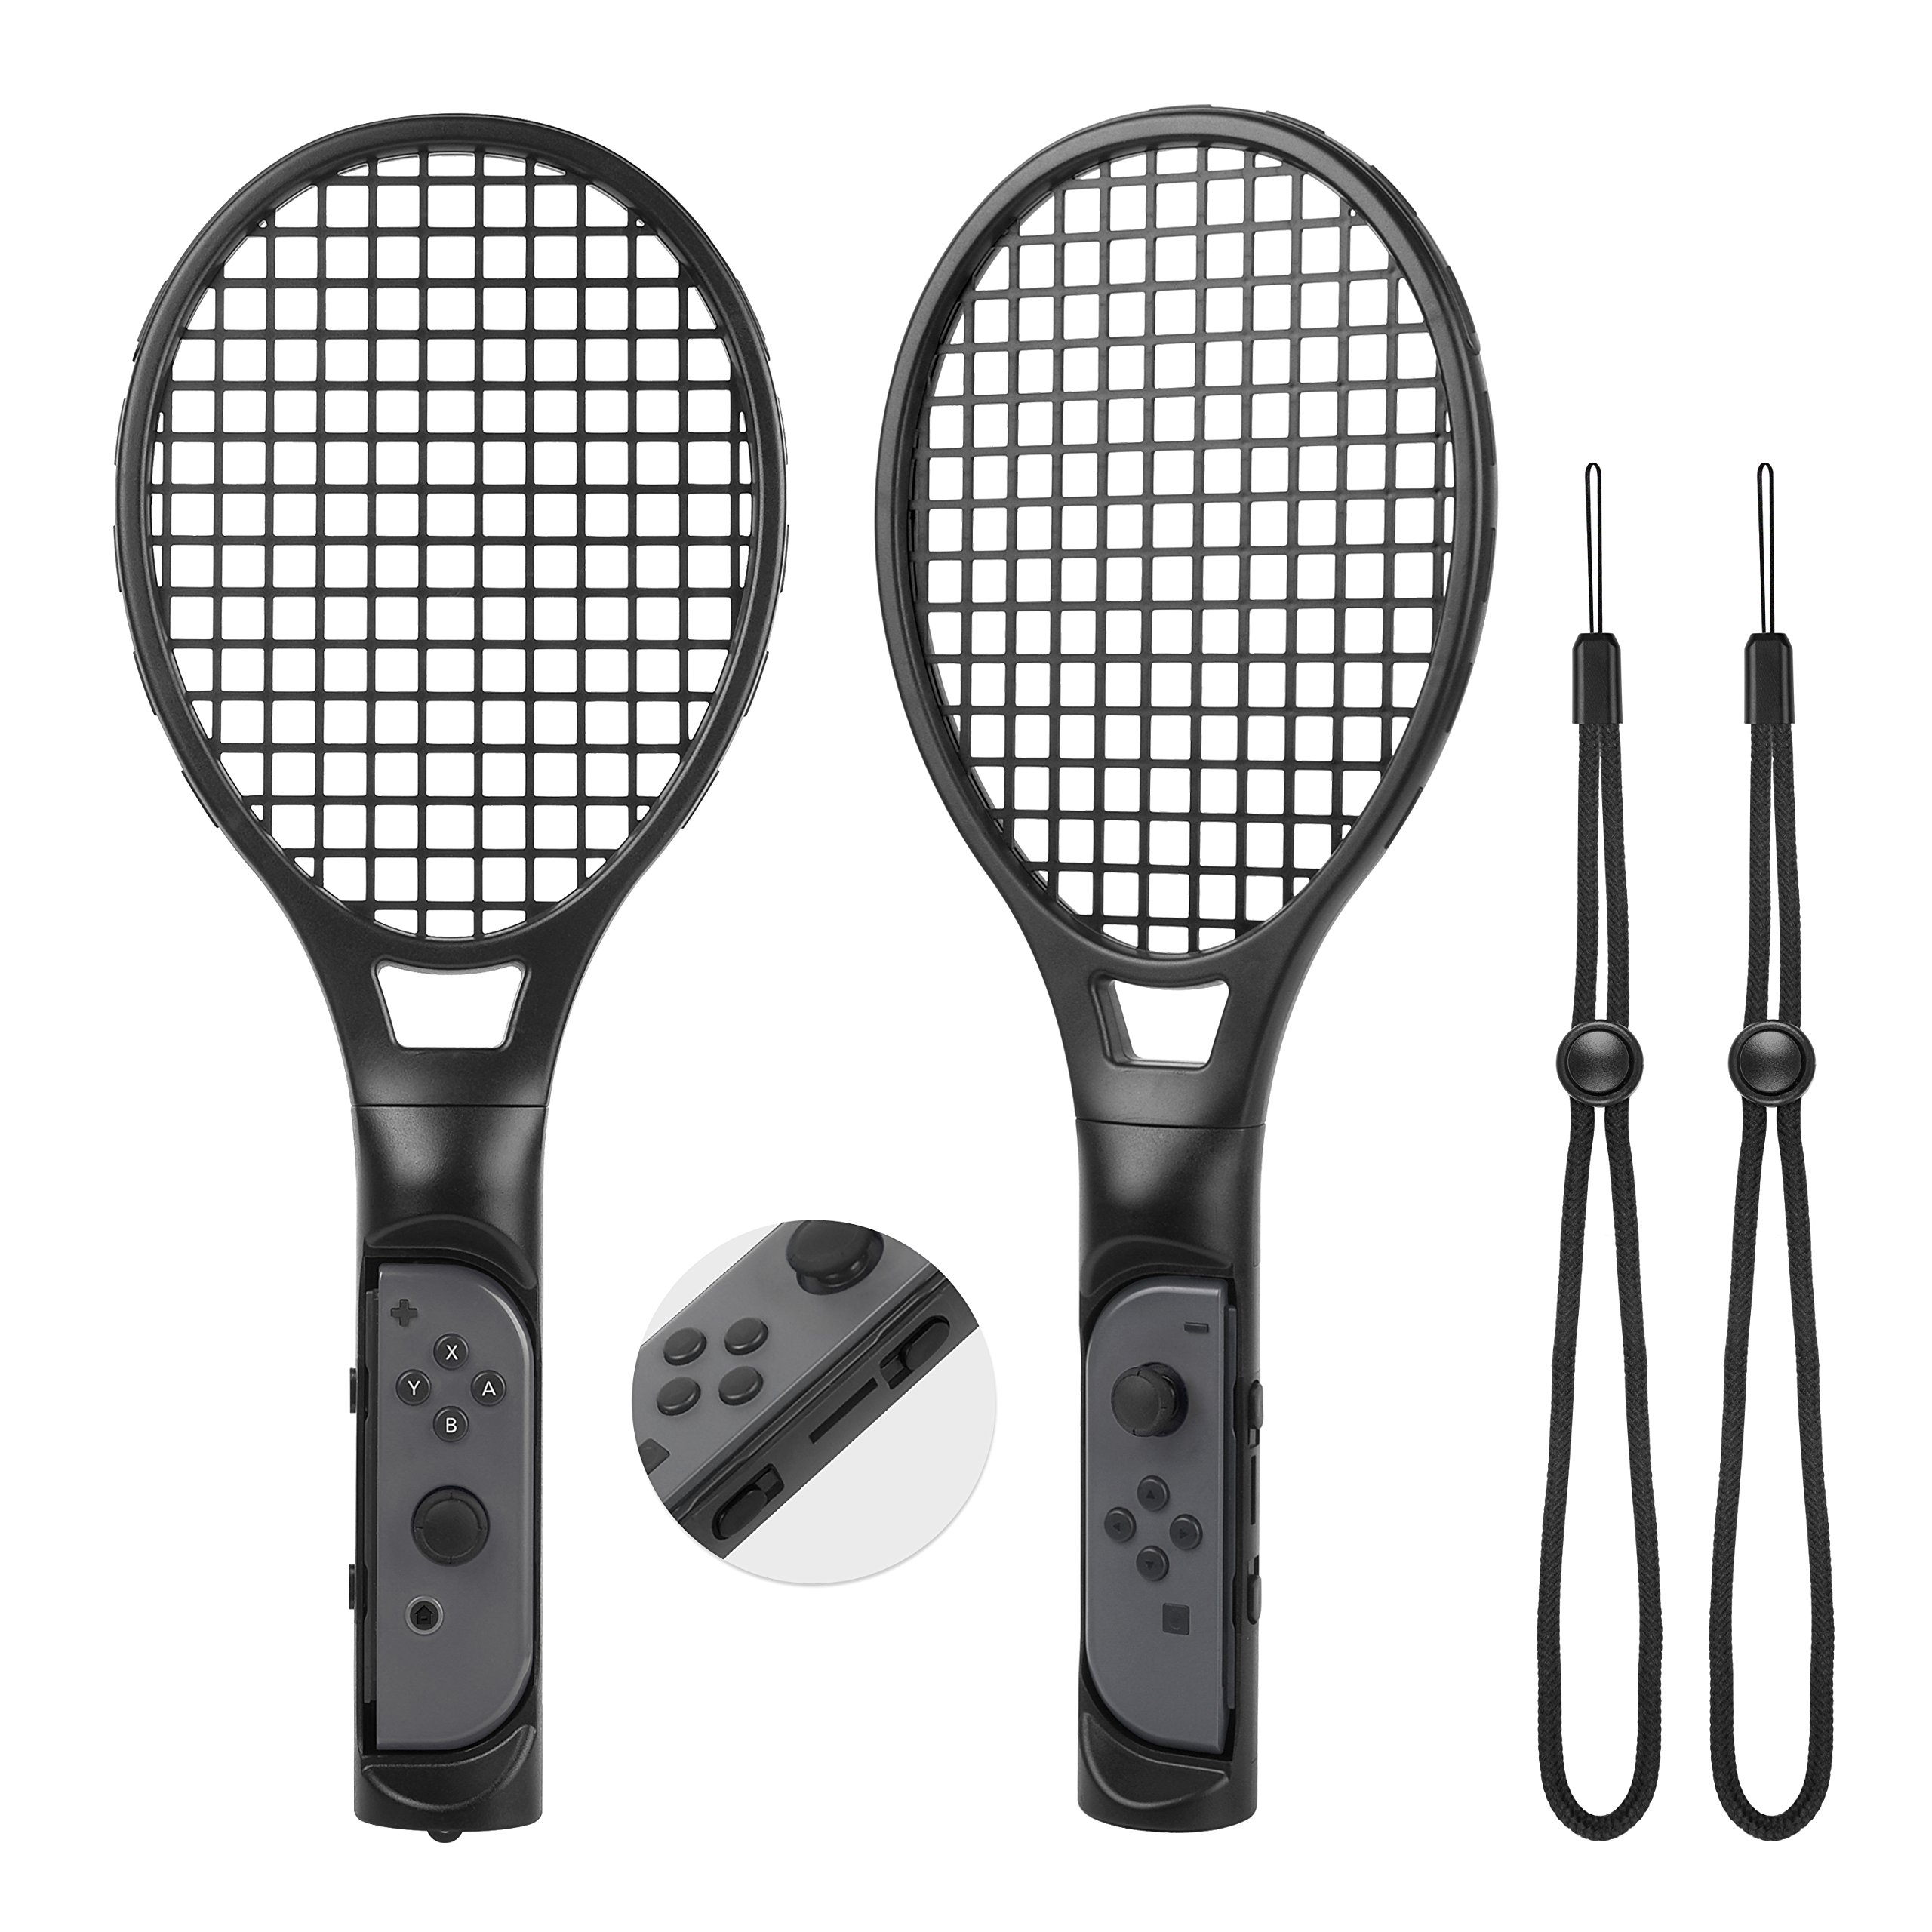 Tennis Racket for Mario Tennis Aces -Zecti Nintendo Switch Joy-con Accessories for Mario Tennis Aces Game, Tennis Racket Grips for Switch Joy-con Pack of 2 (Black) by Zecti